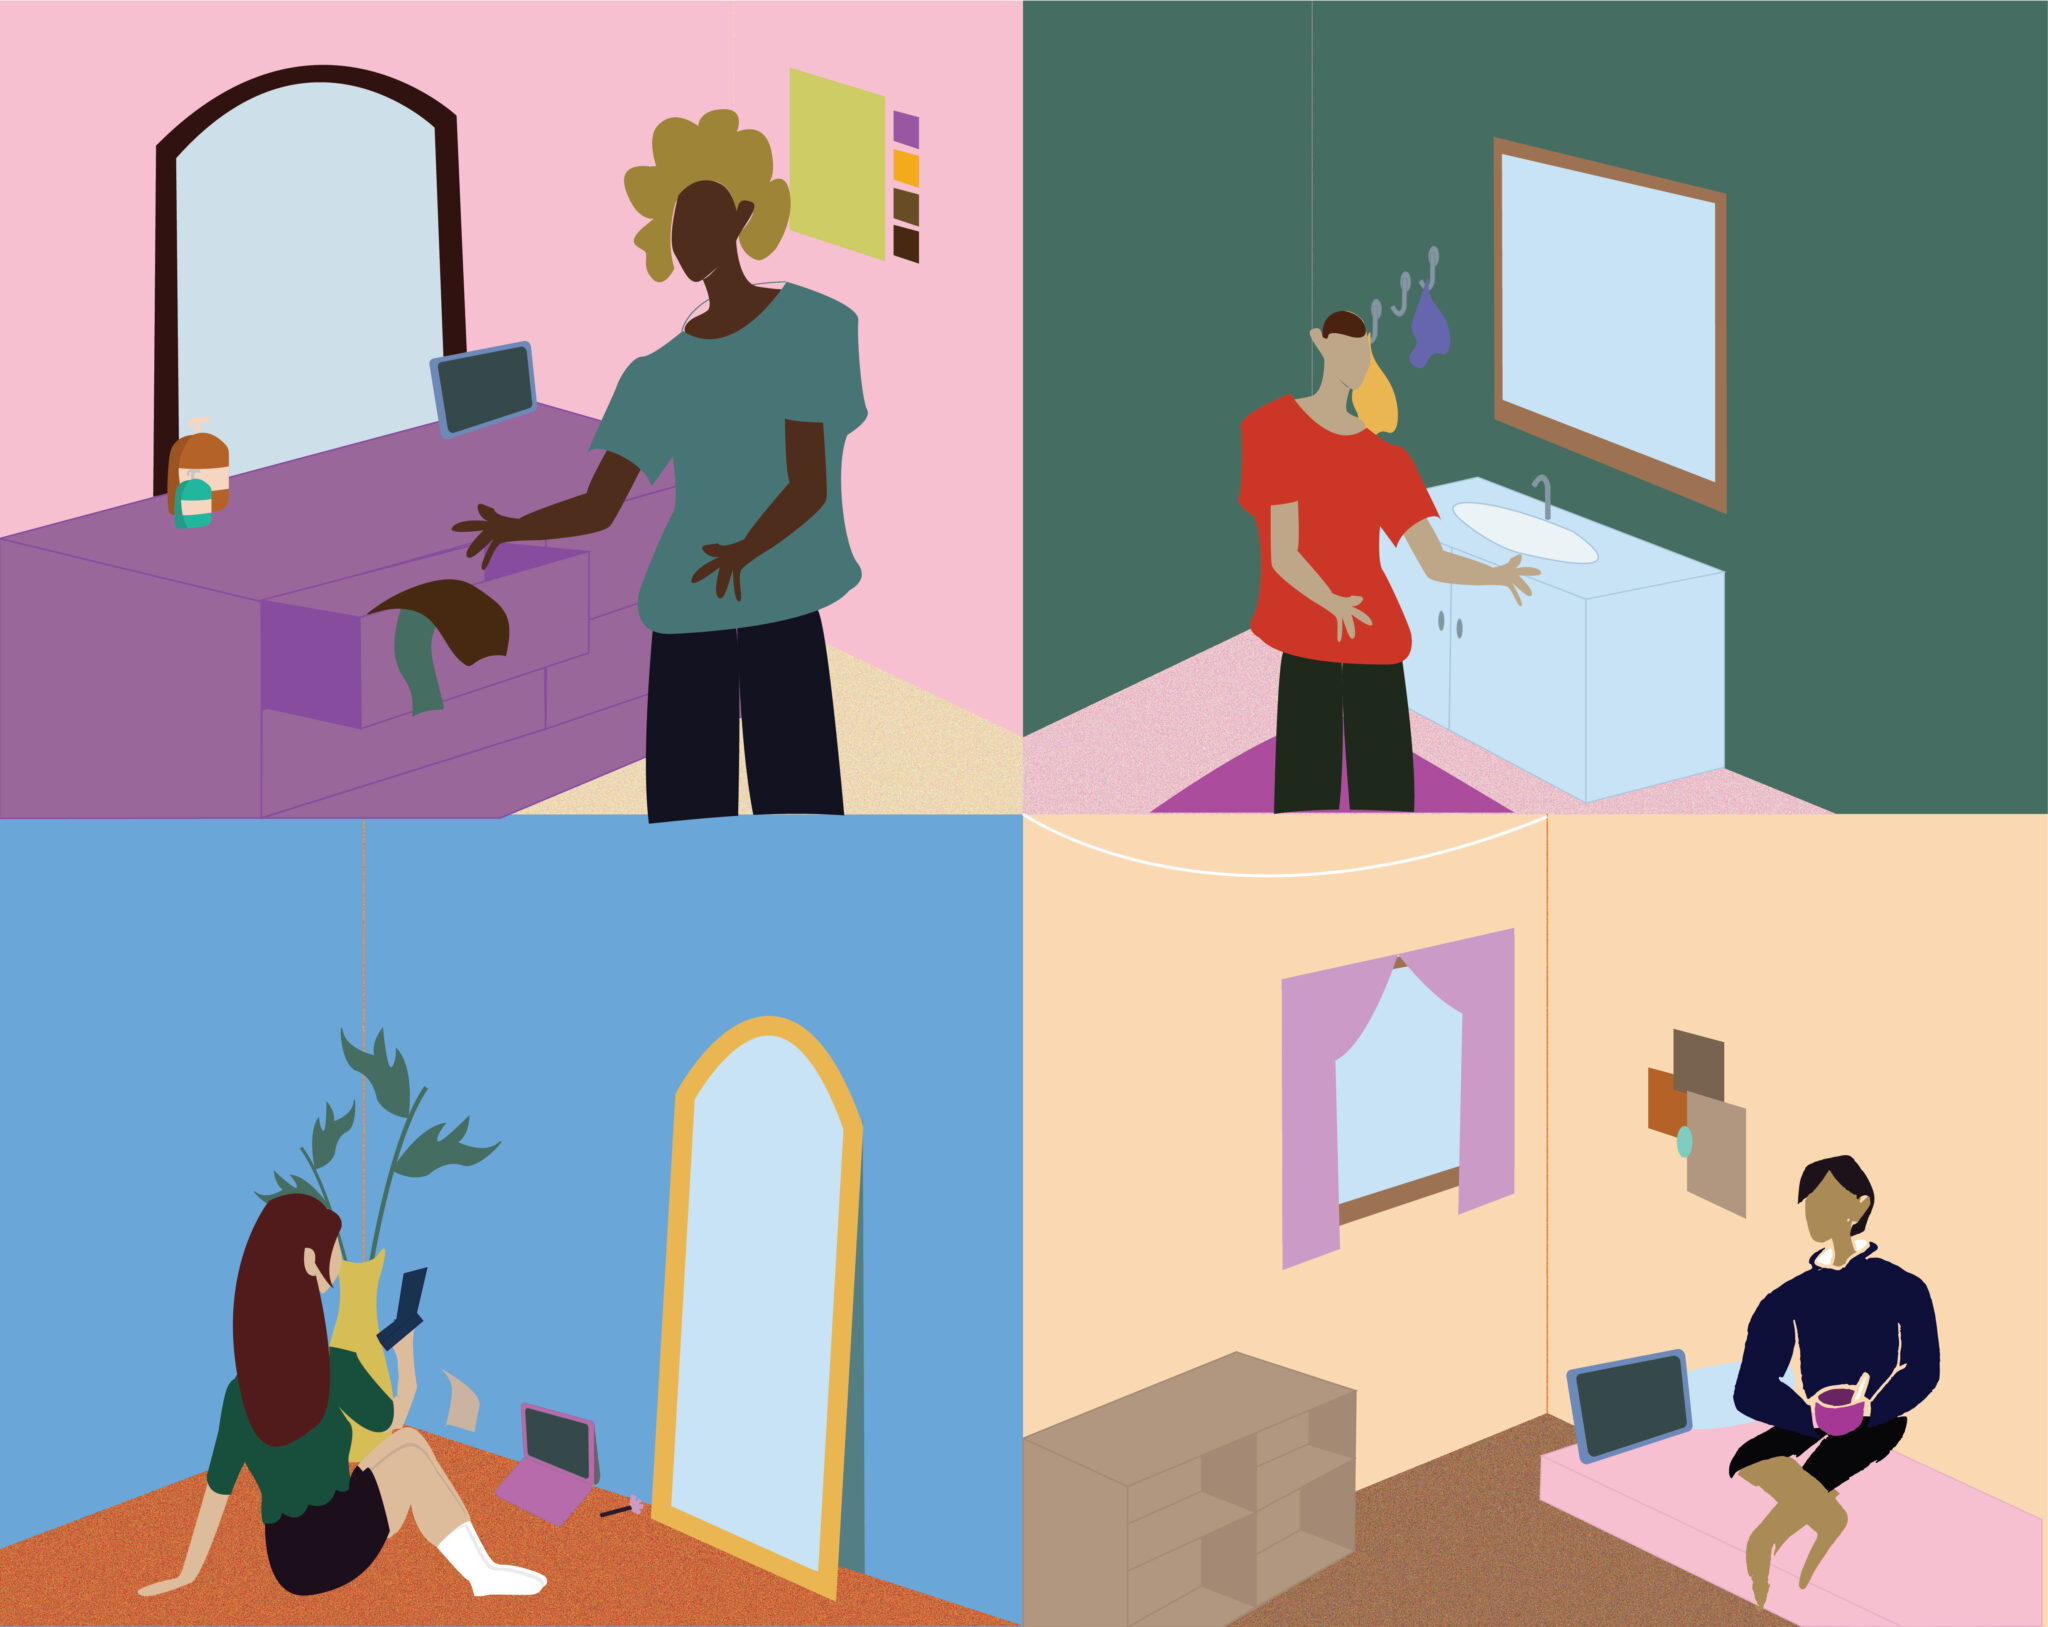 Split illustration depicting four individuals getting ready at home.